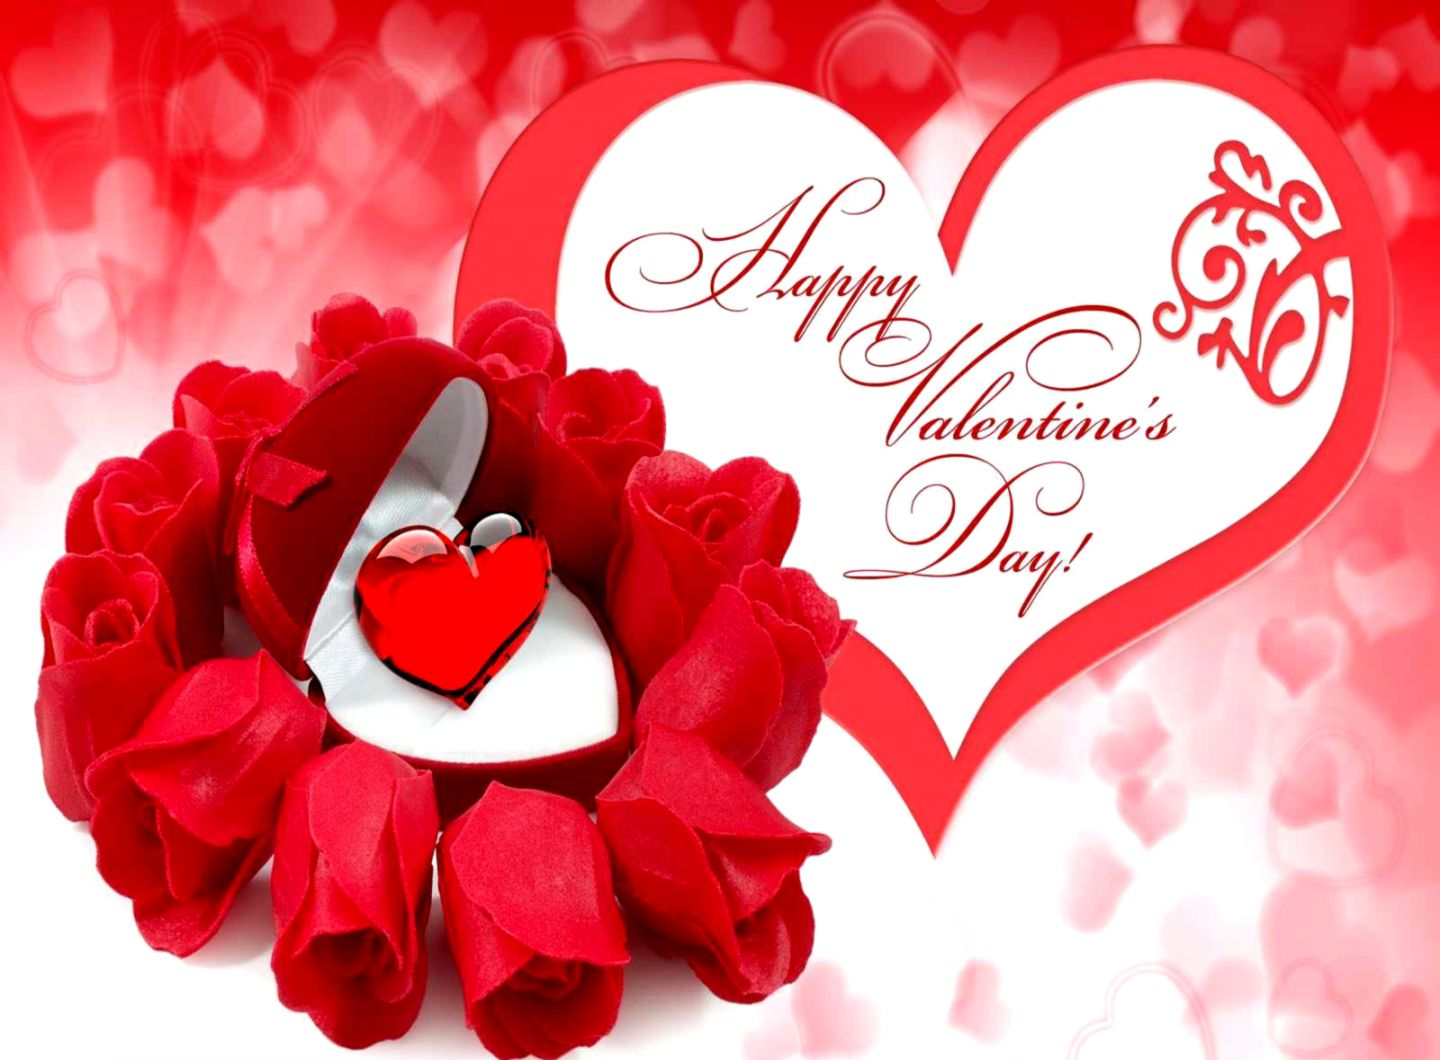 14 Feb Happy Valentines Day 2015 HD Wishes And Quotes Wallpapers